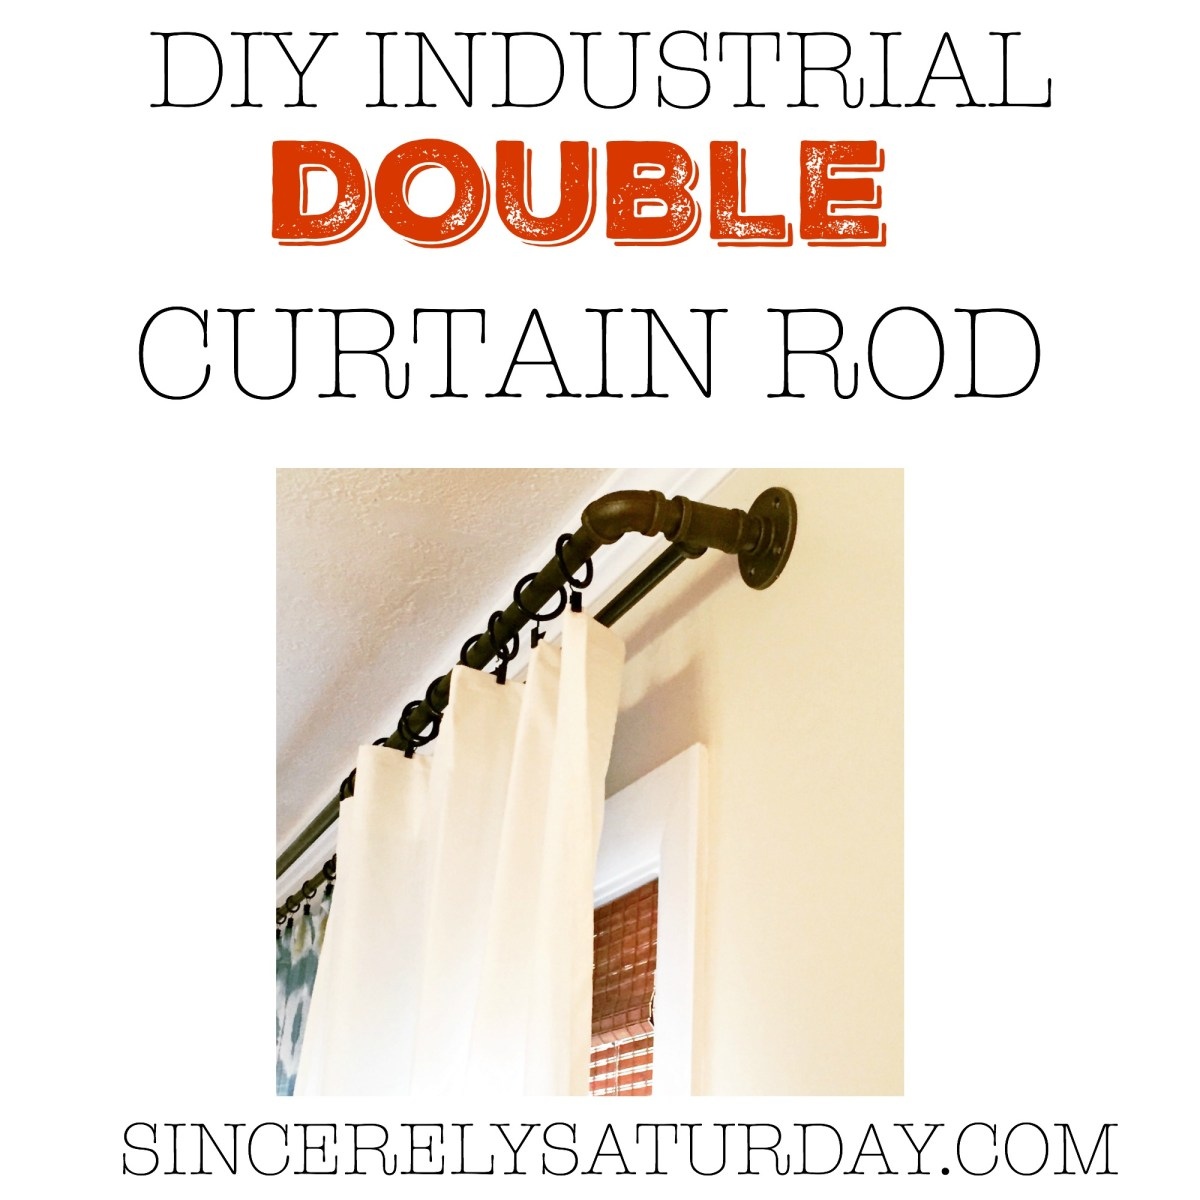 DIY INDUSTRIAL DOUBLE CONDUIT CURTAIN ROD